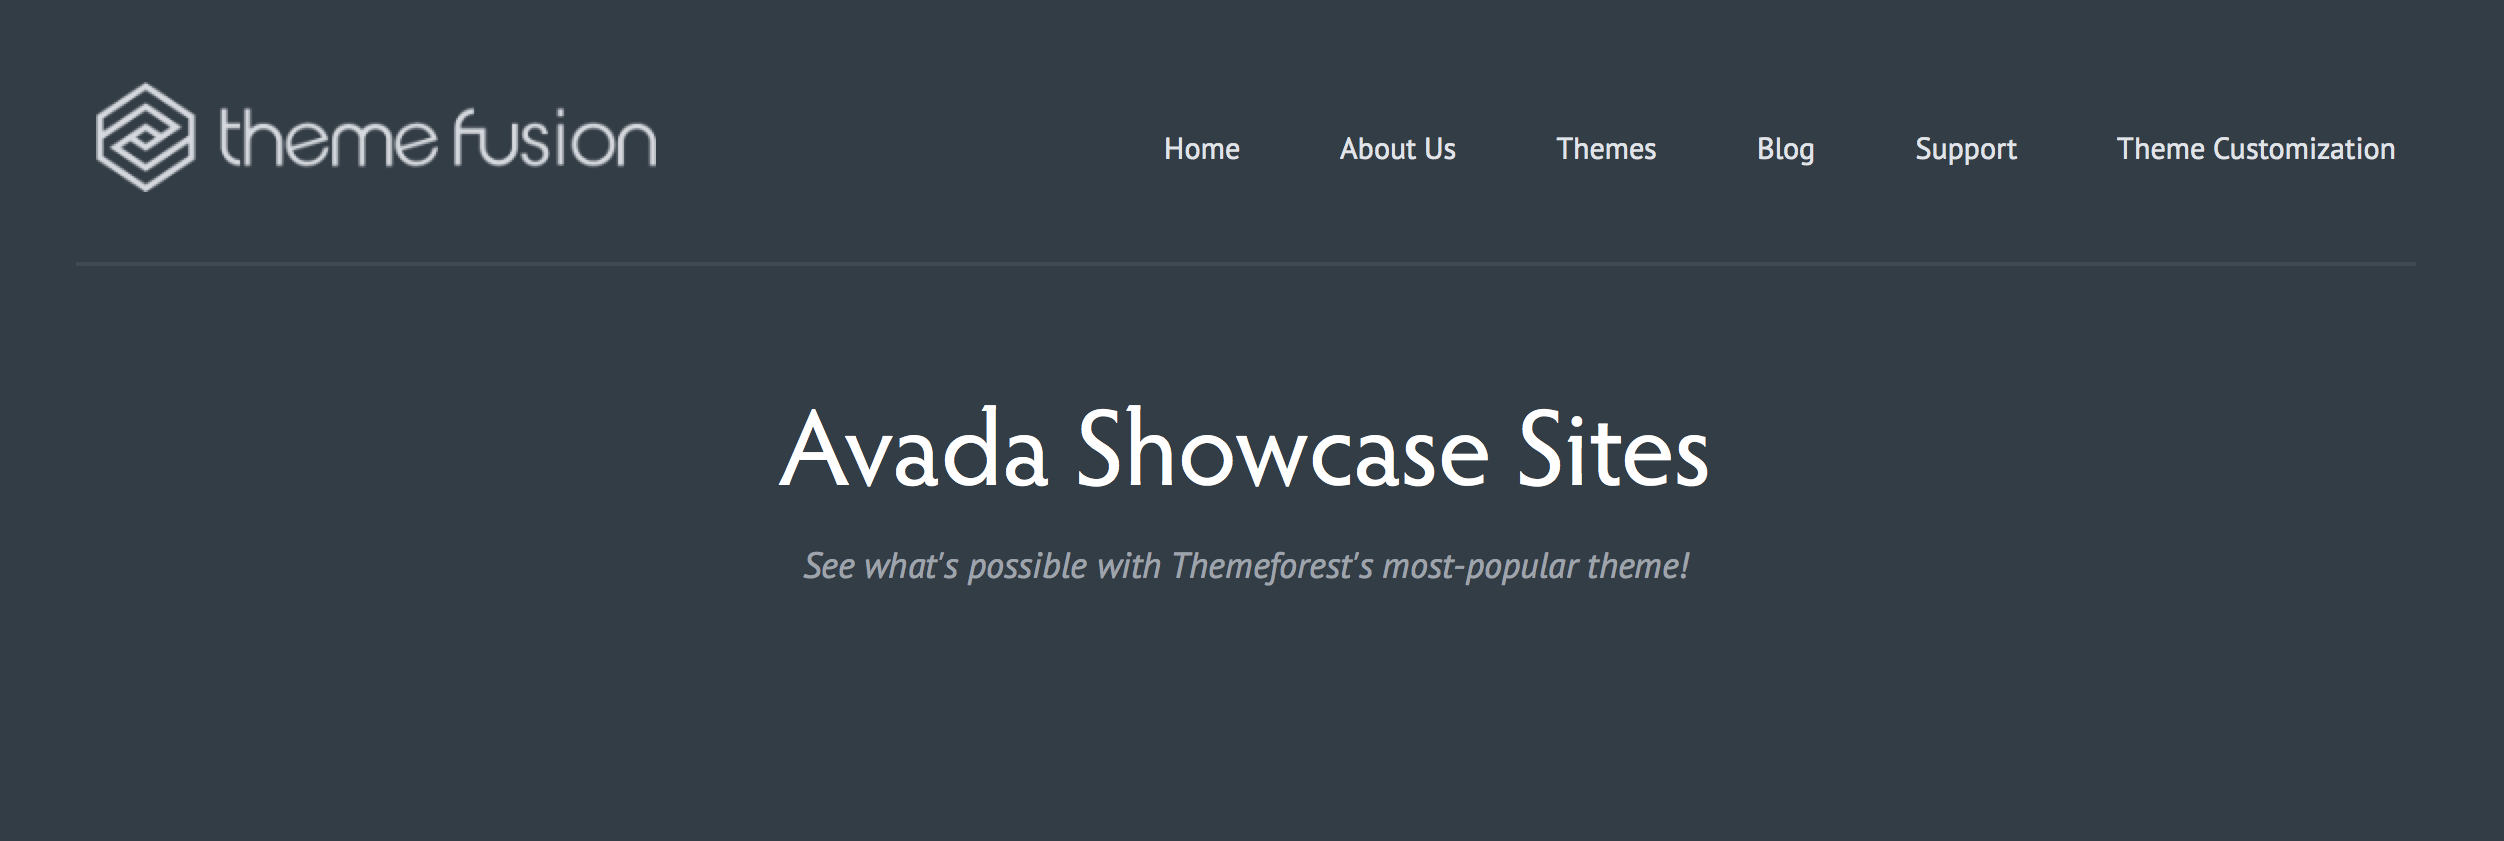 Example Sites Built With Avada WordPress Theme